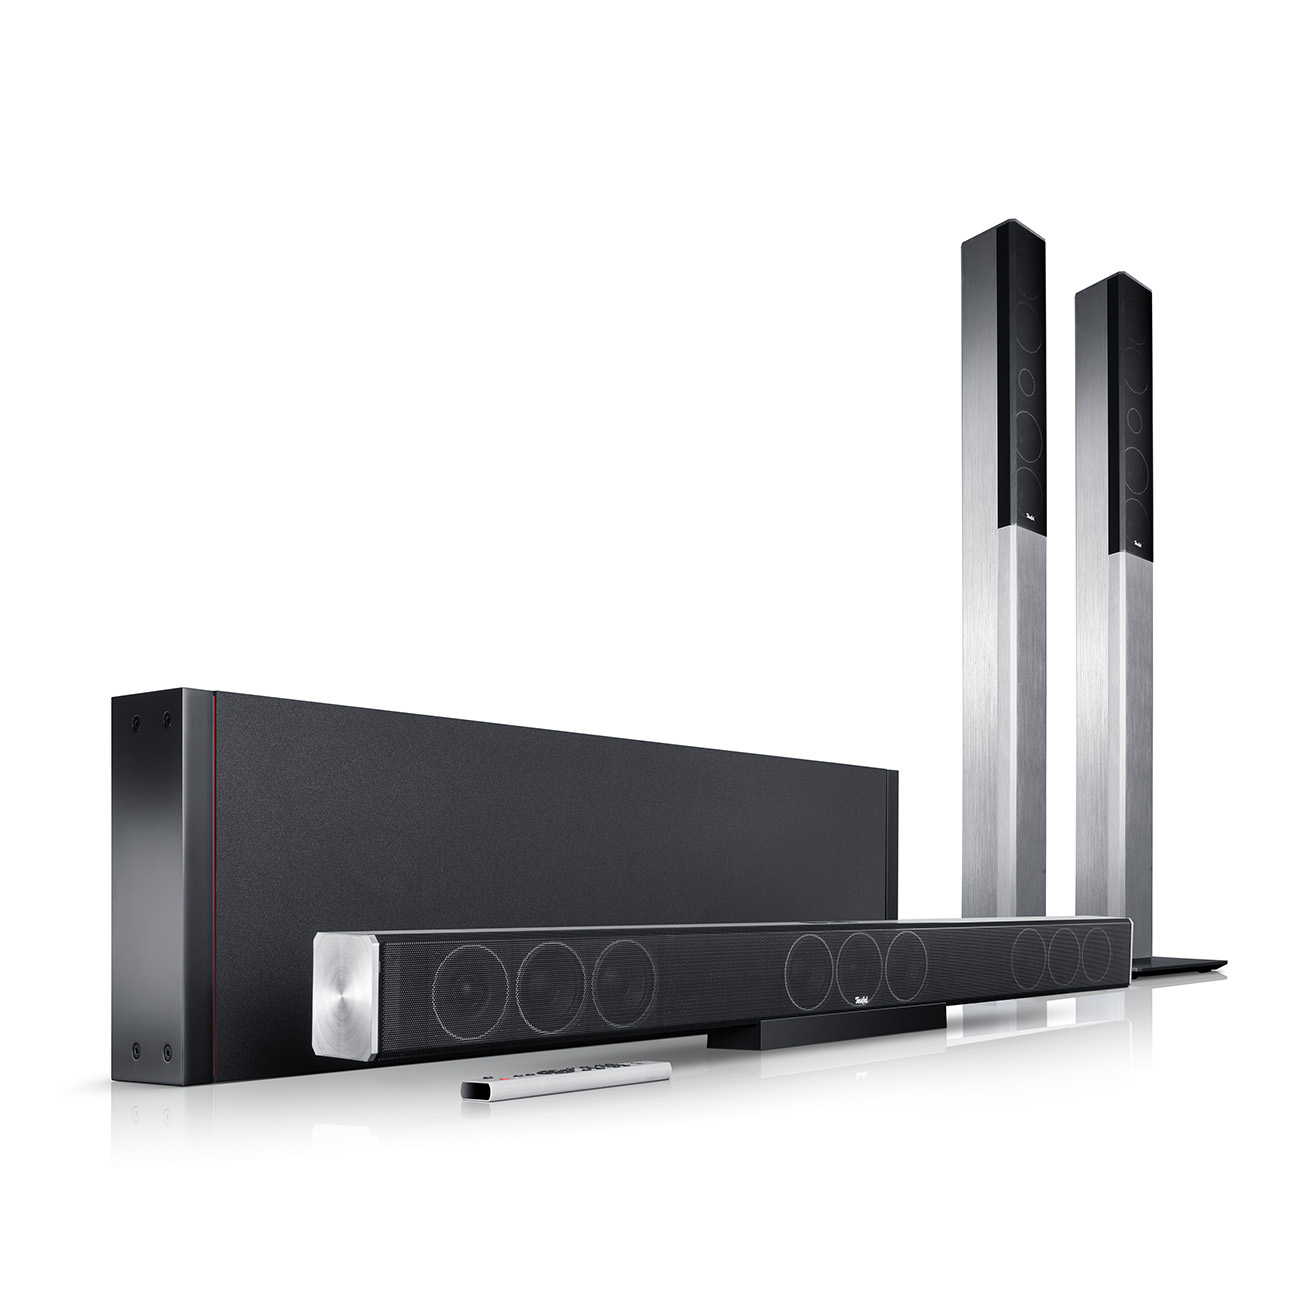 Cinebar Trios soundbar with wireless surround speakers and subwoofer